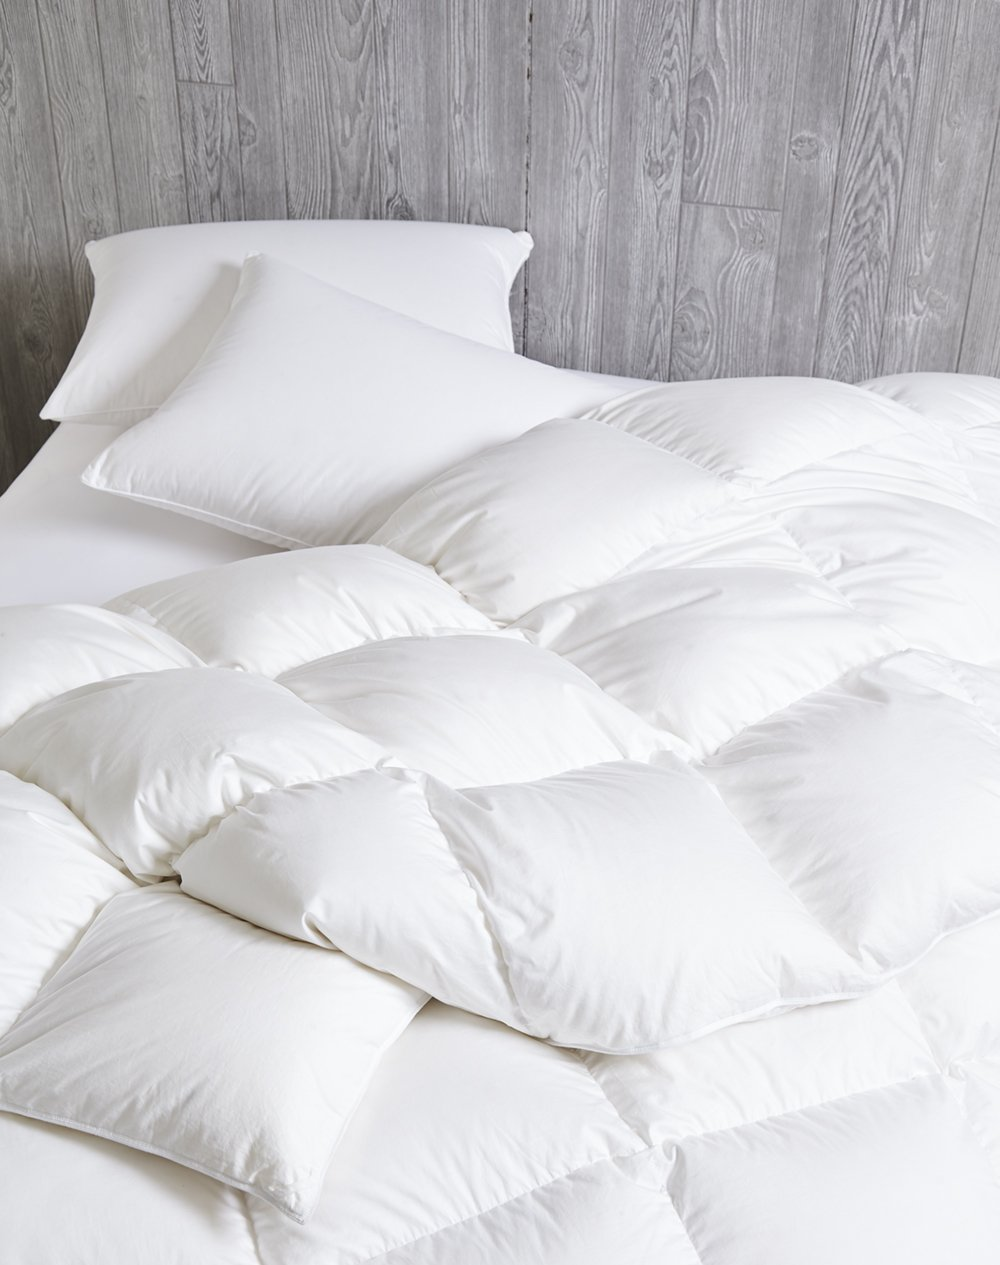 Dreamstead by Cuddledown Luxurious 700FP Goose Down Warm Hypoallergenic Duvet Comforter, King, White